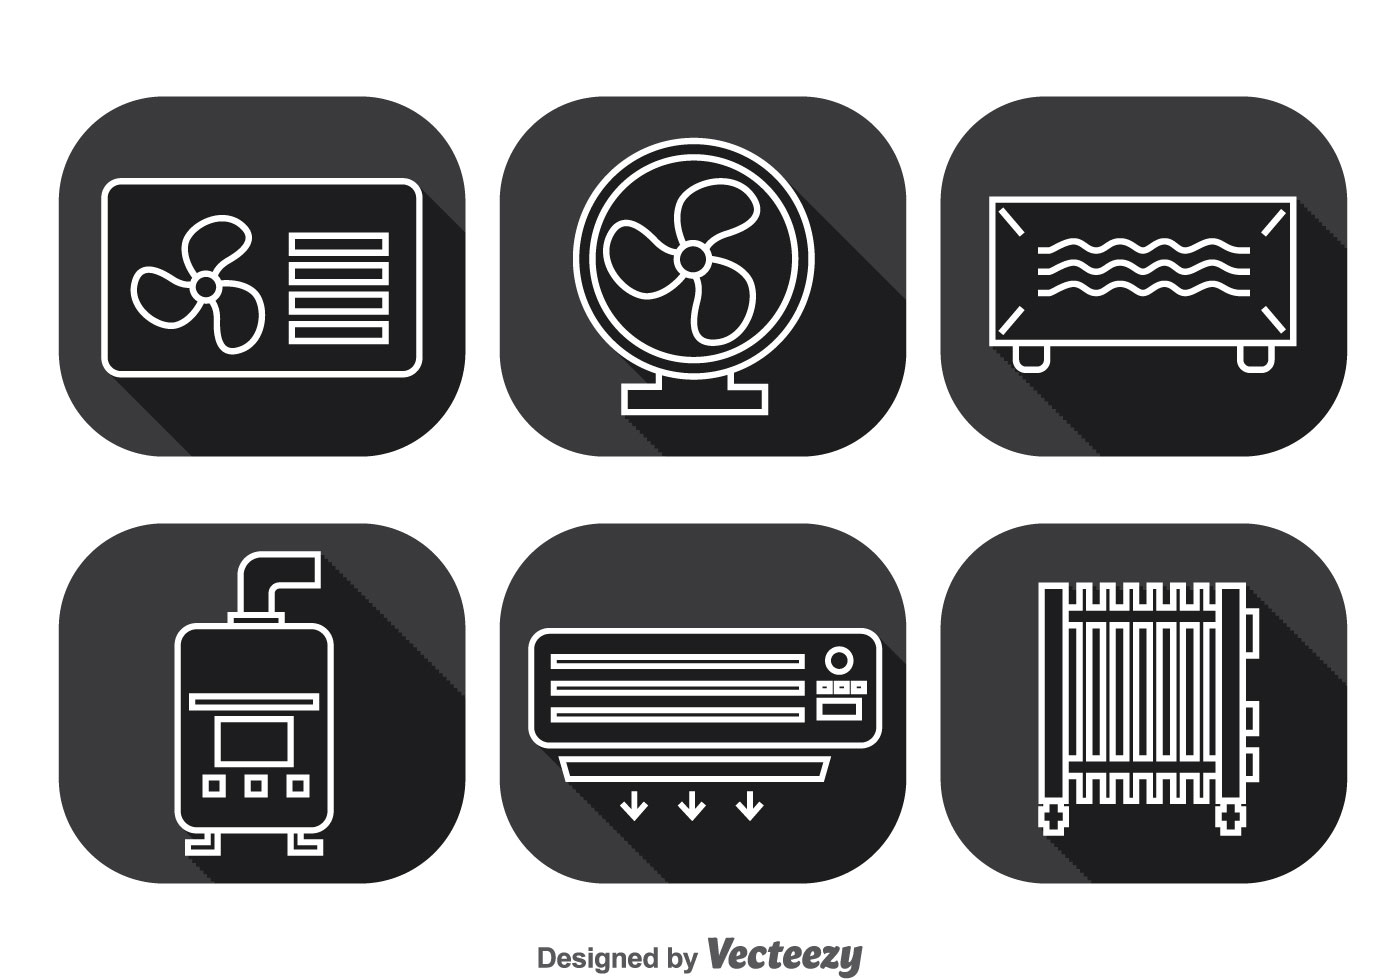 Hvac System Long Shadow Icons Vector Download Free Vector Art Stock  #29292B